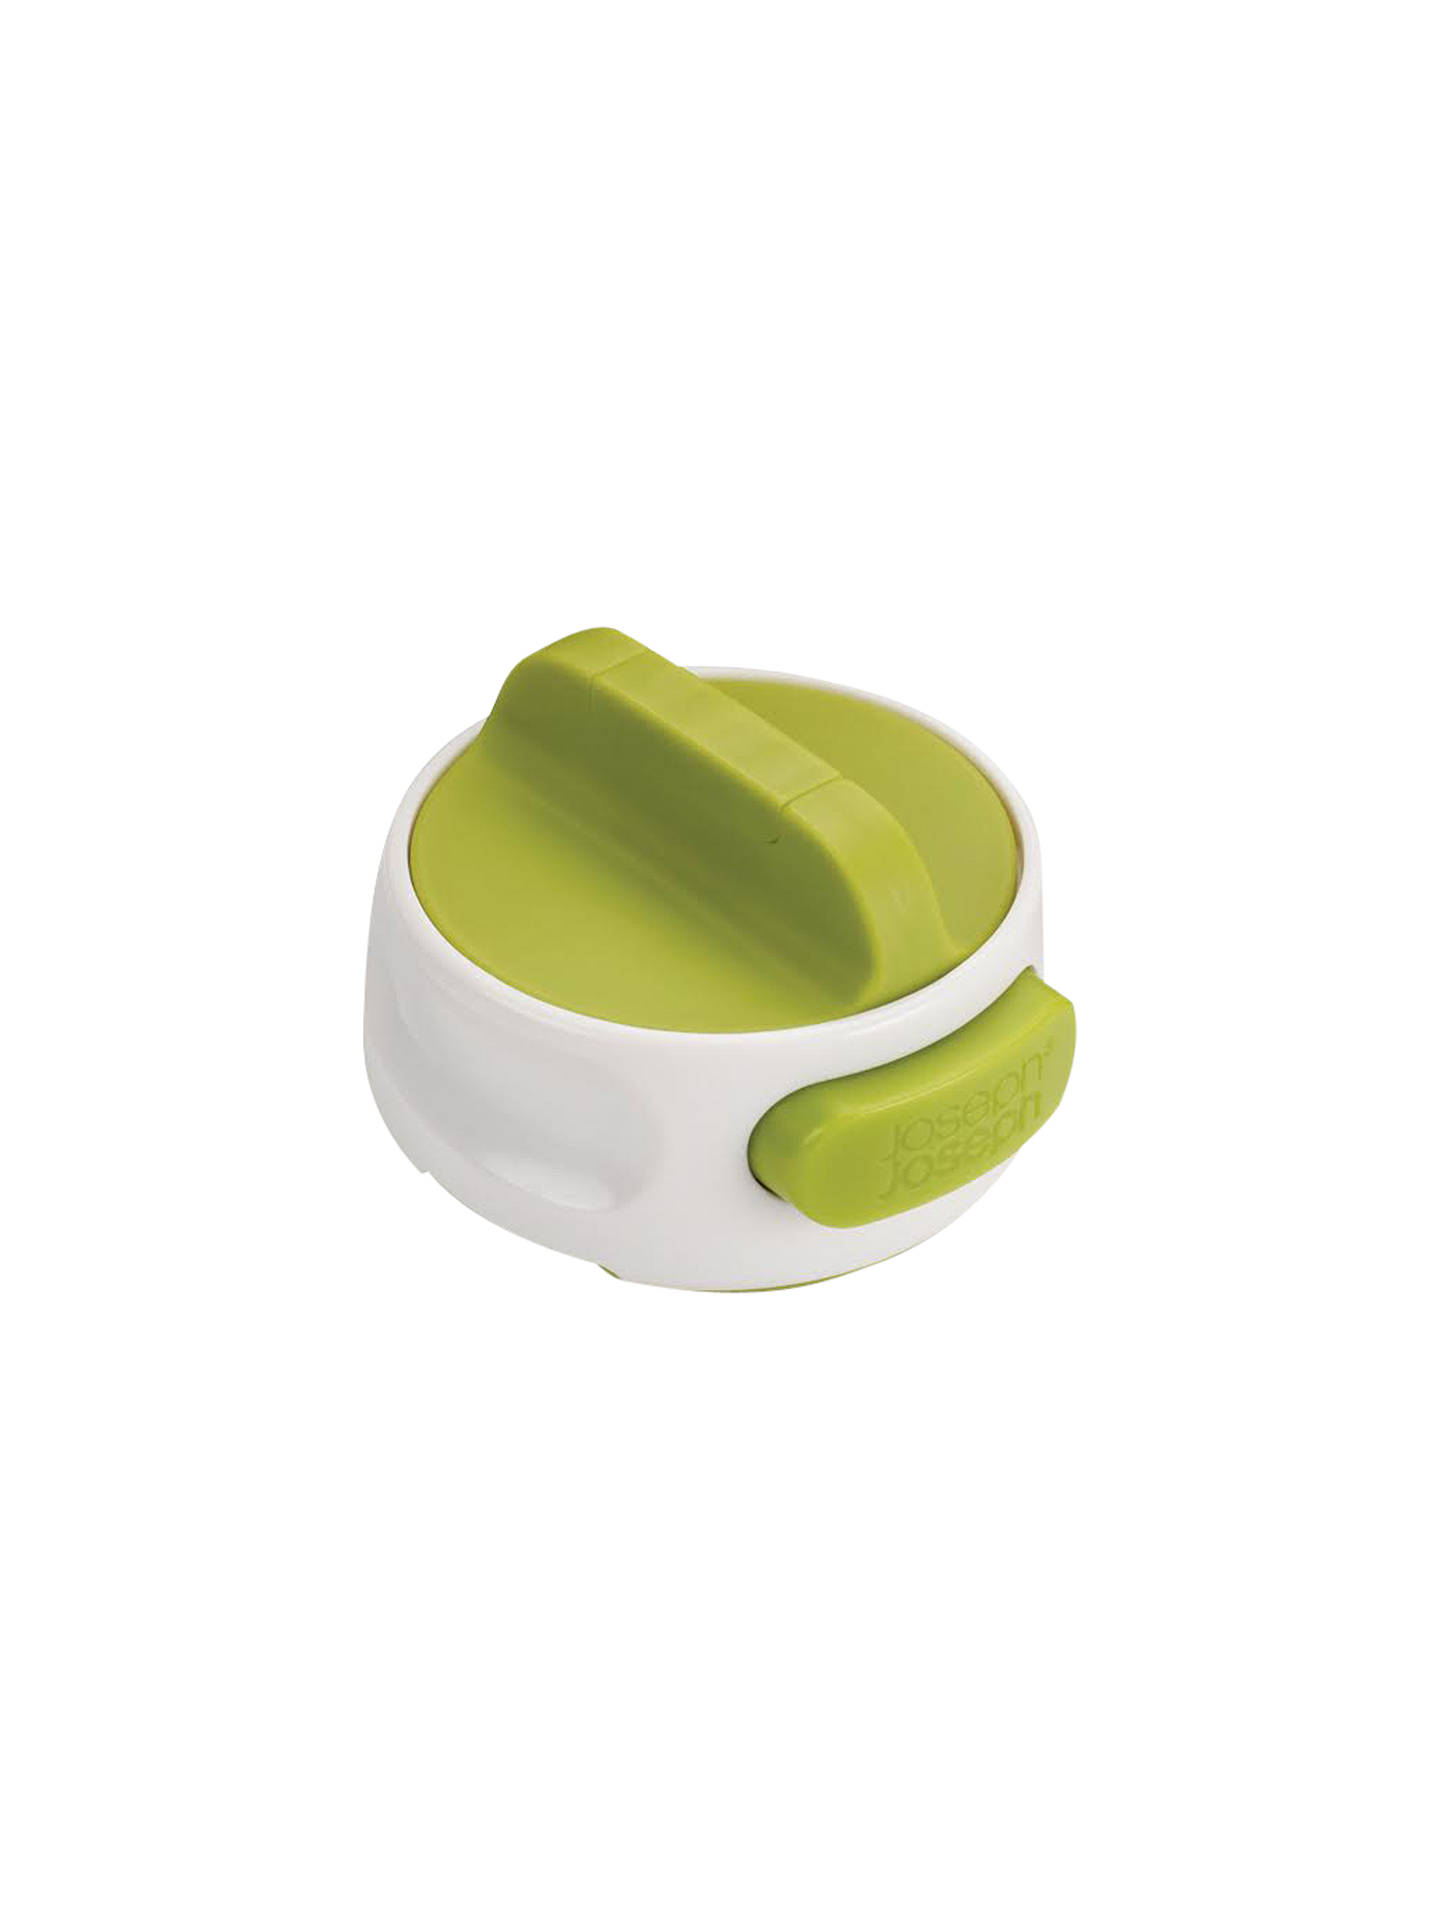 BuyJoseph Joseph Can Do Can Opener Online at johnlewis.com